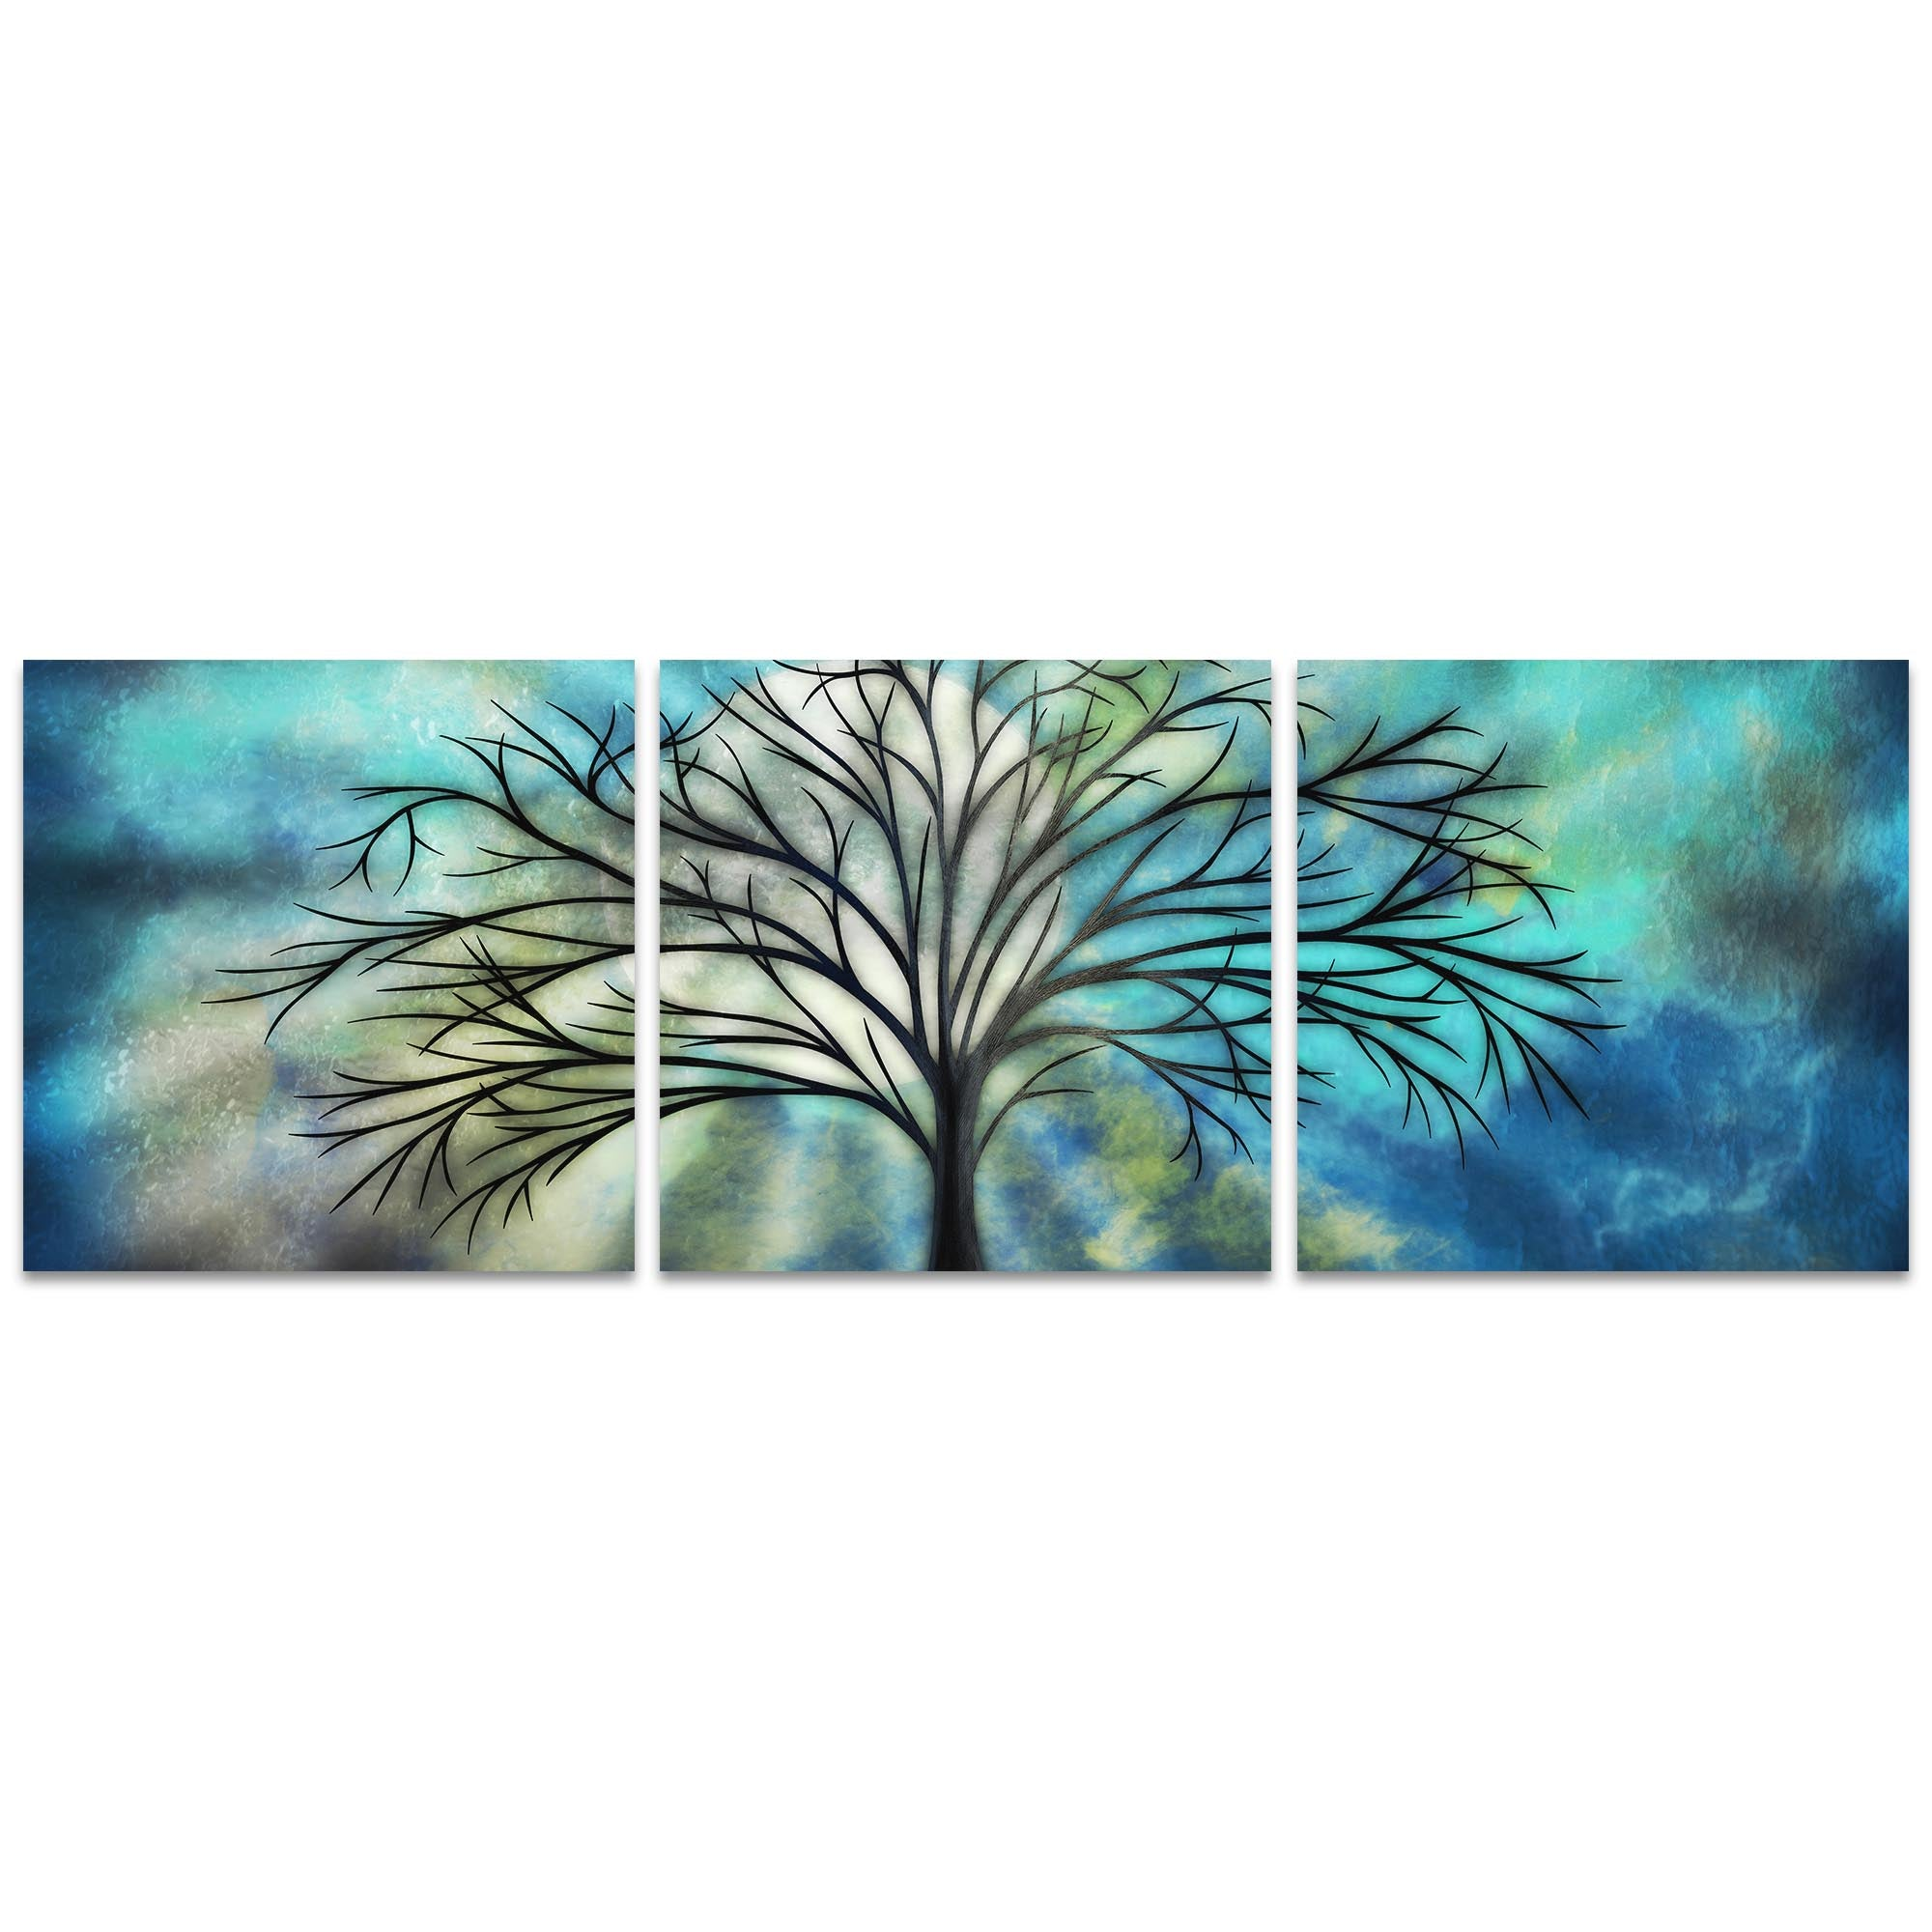 Moonlight Triptych by Stephanie Fields - Whimsical Tree Art on Metal or Acrylic